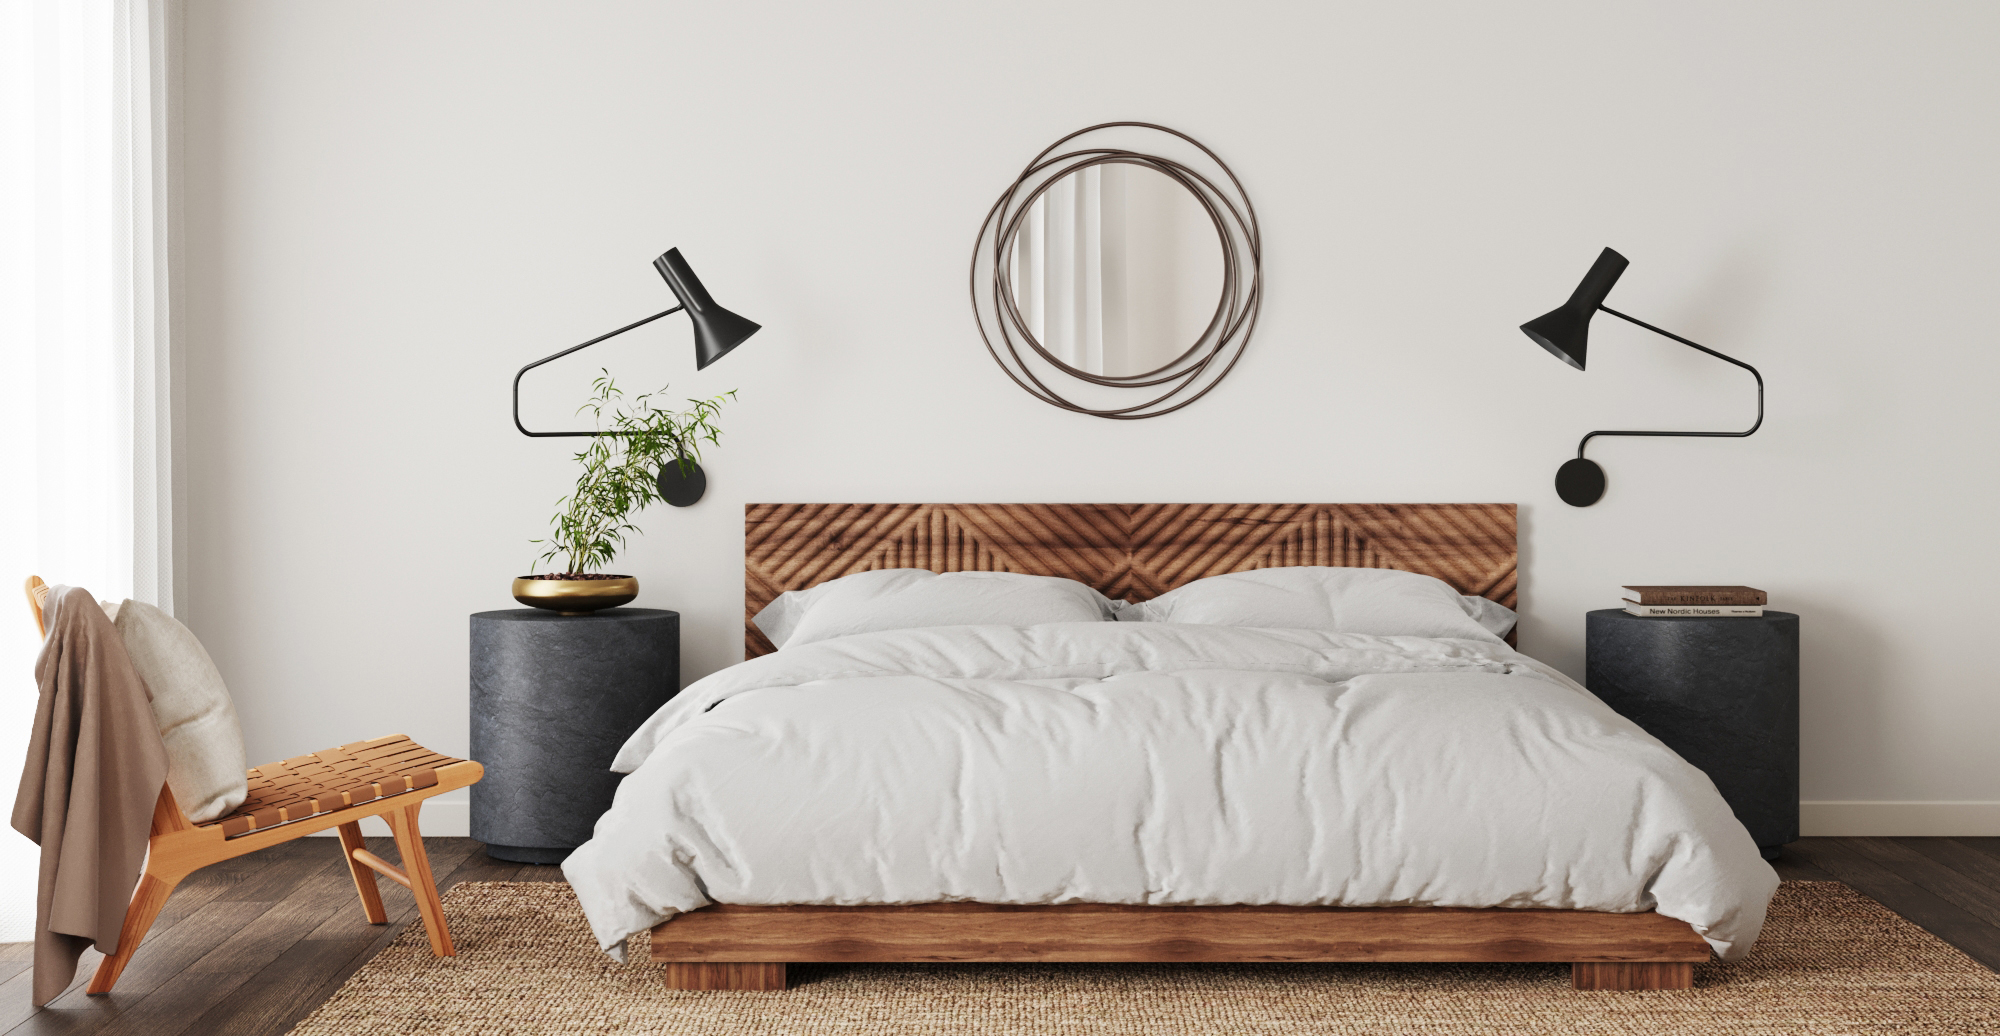 Brosa Marlon King Size Bed Frame styled in modern contemporary bedroom